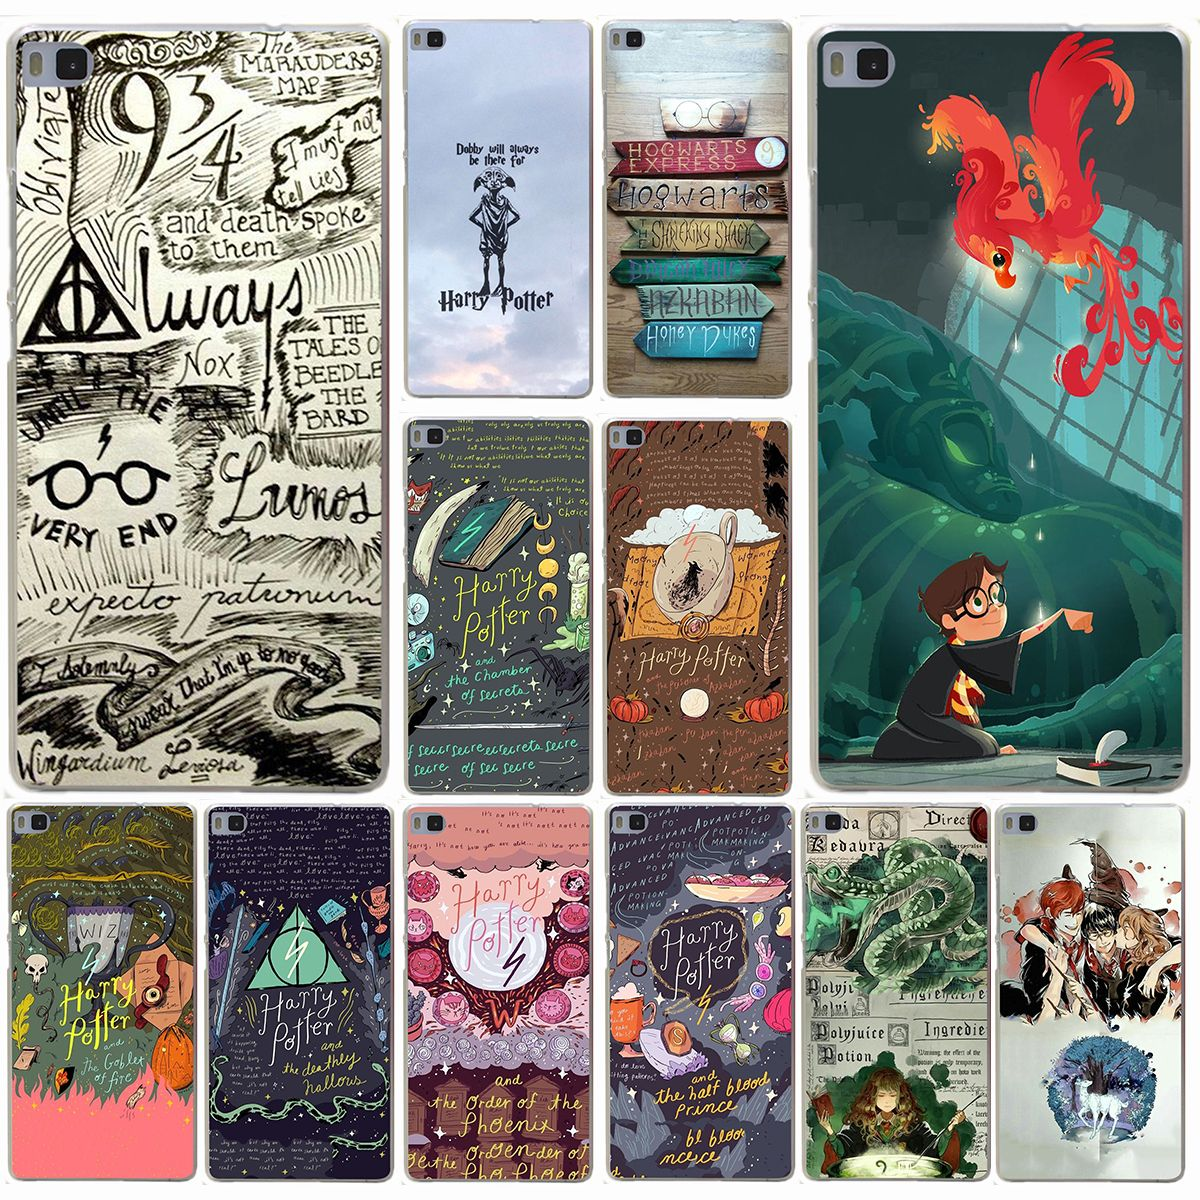 Harry Potter And The Sorcerer S Stone Hard Case For Huawei P9 P8 Lite P9 Plus P6 P7 G7 Honor 6 7 4c Harry Potter Iphone Harry Potter Colors Harry Potter Case